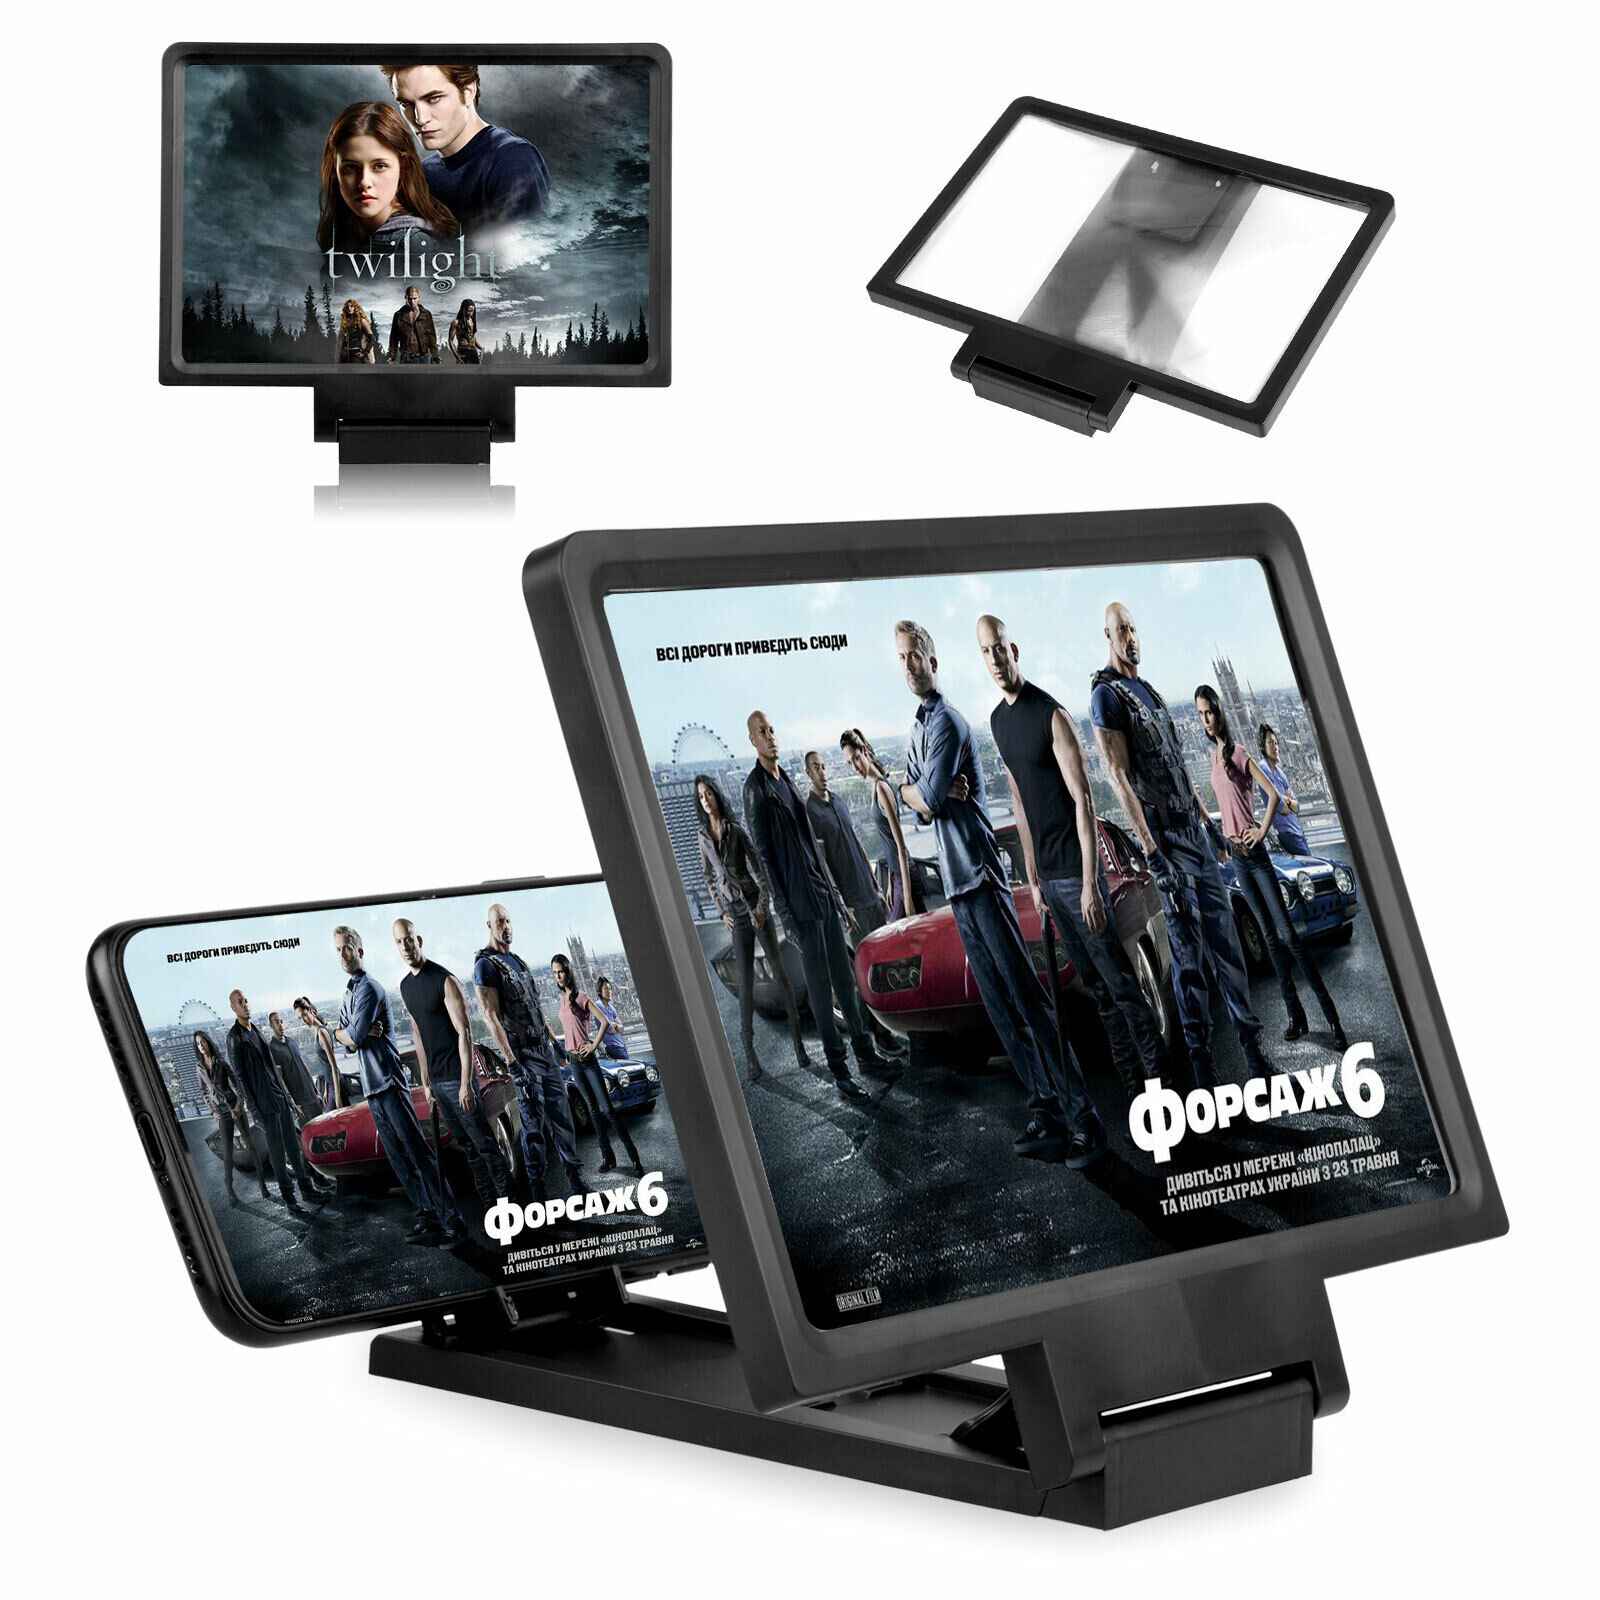 Gfbyq HD Mobile Phone Screen Amplifier Color : D Watching Film Projection Artifact Watching Movie Portable Lazy Desktop Stand